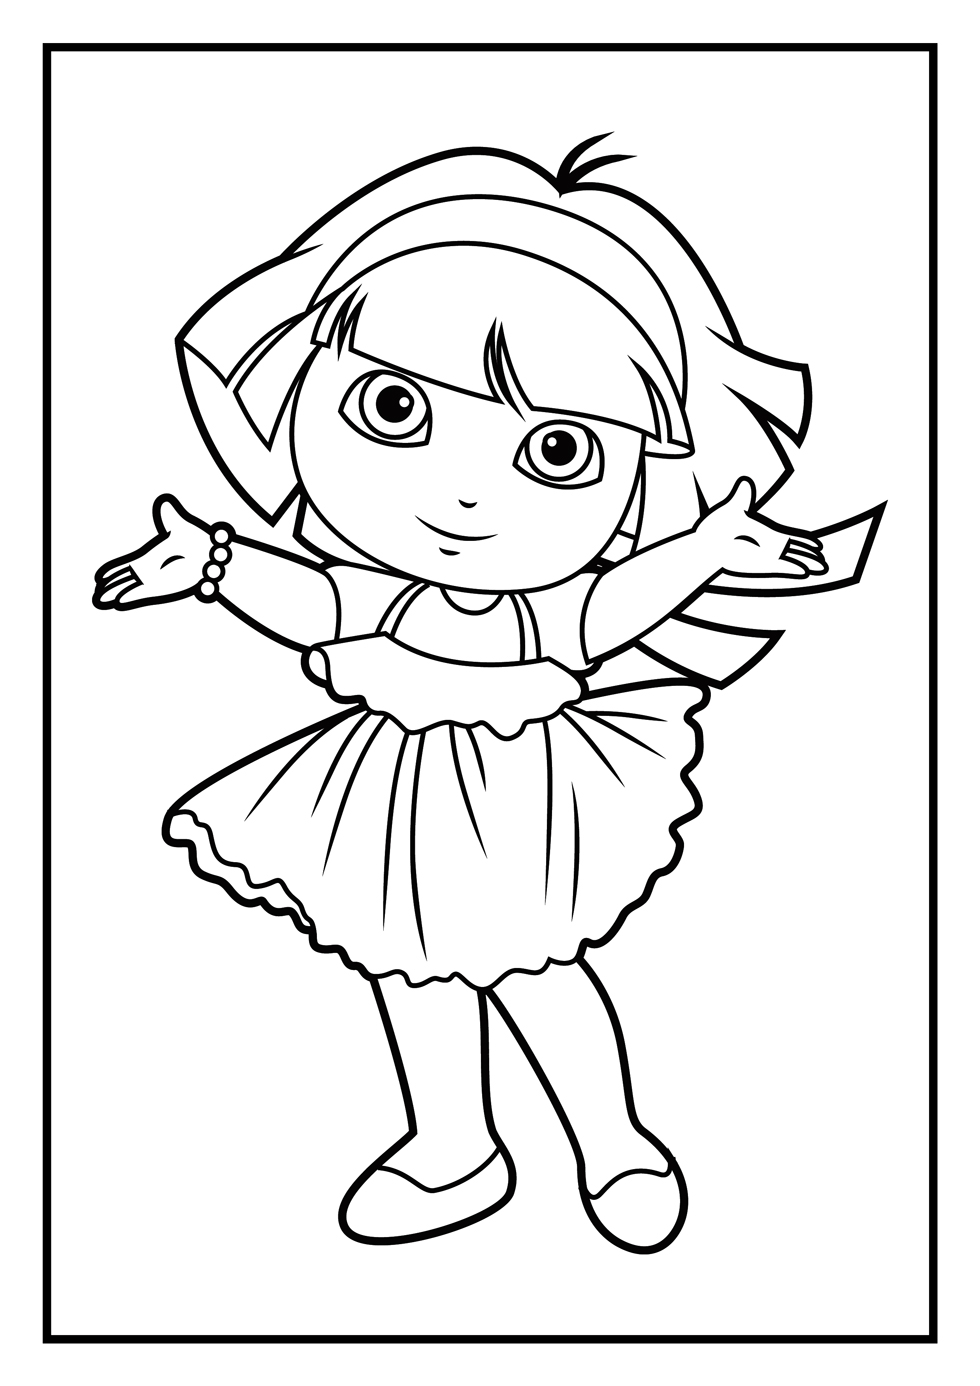 dora coloring sheets dora coloring pages diego coloring pages dora coloring sheets